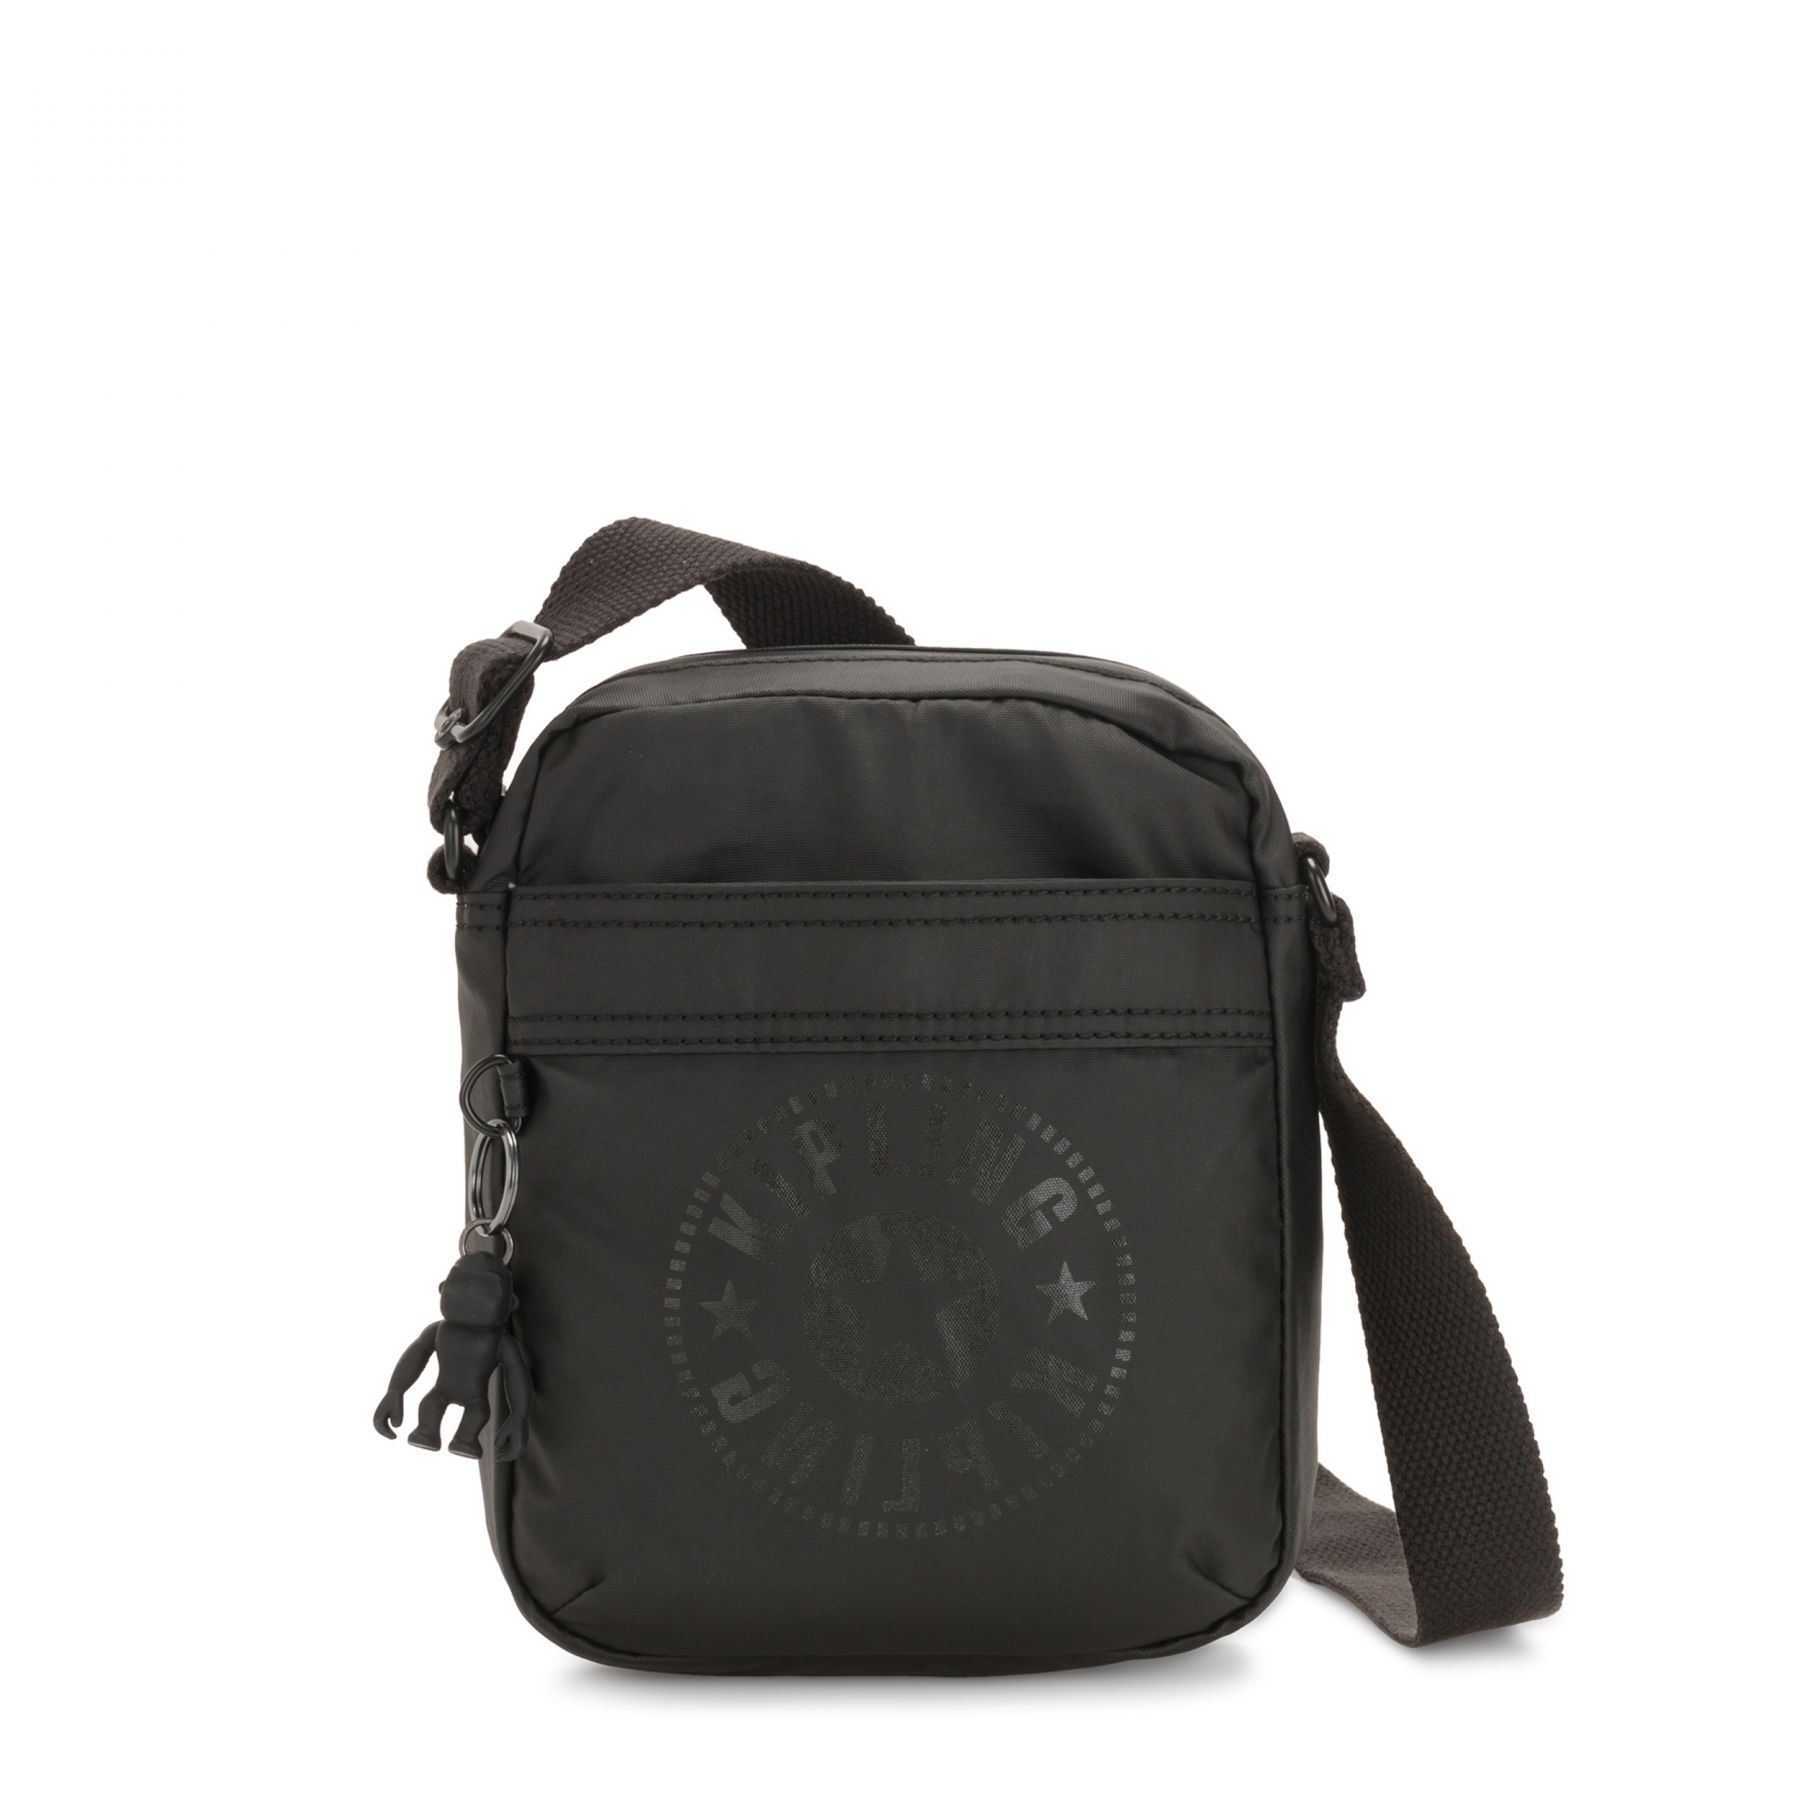 HISA BAGS by Kipling - Front view